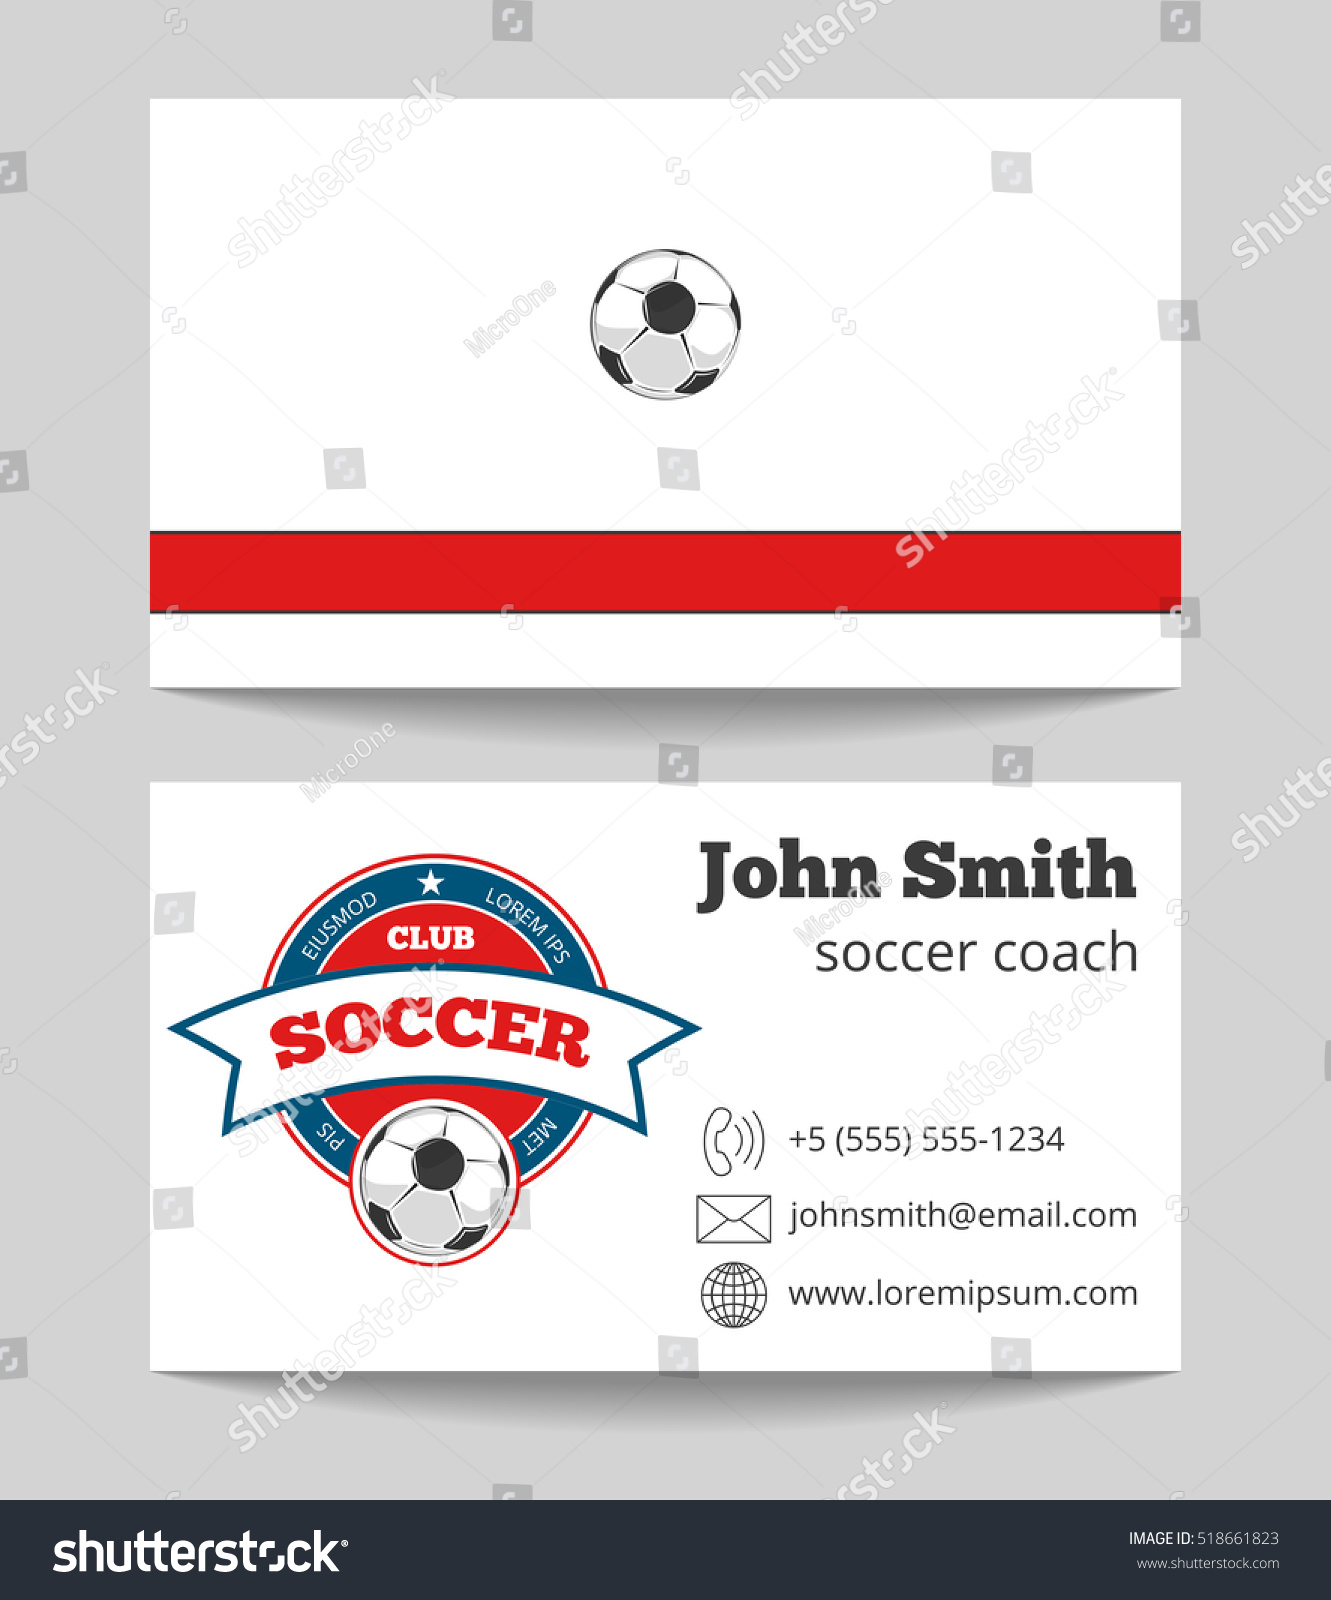 Soccer coach business card template logo stock illustration soccer coach business card template with logo football trainer card illustration magicingreecefo Gallery